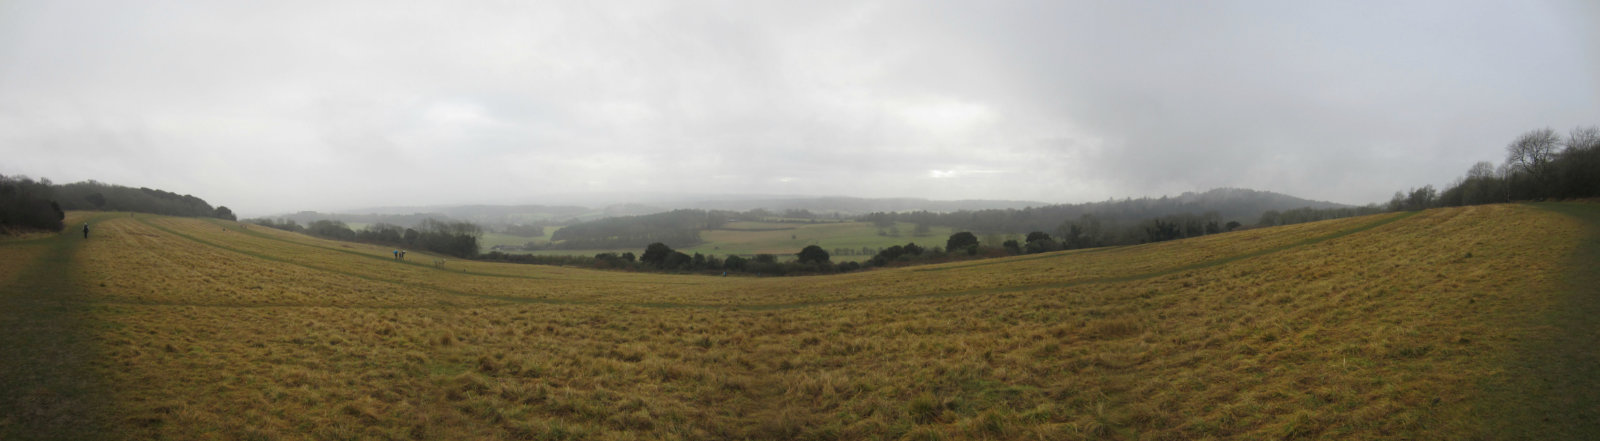 Albury Downs view - North Downs Way